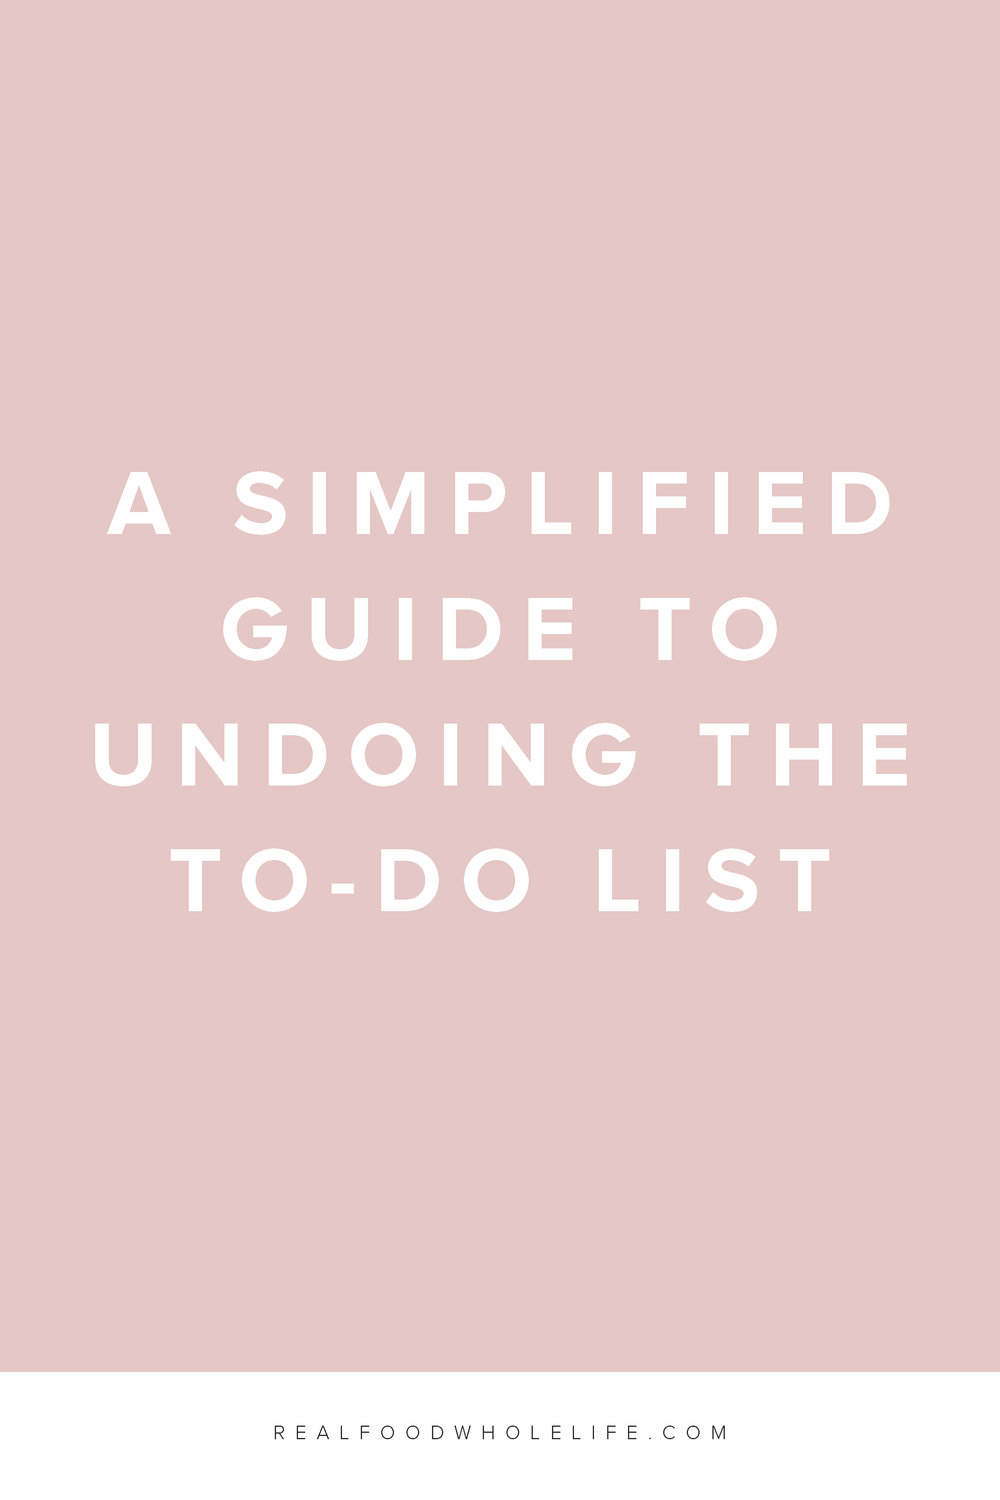 A quick guide to undoing the to-do list. Read on for more on doing less to feel more! #realfoodwholelife #feelgoodeffect #gentleisthenewperfect #practicegentle #selfcare #organize #simplifiedguide